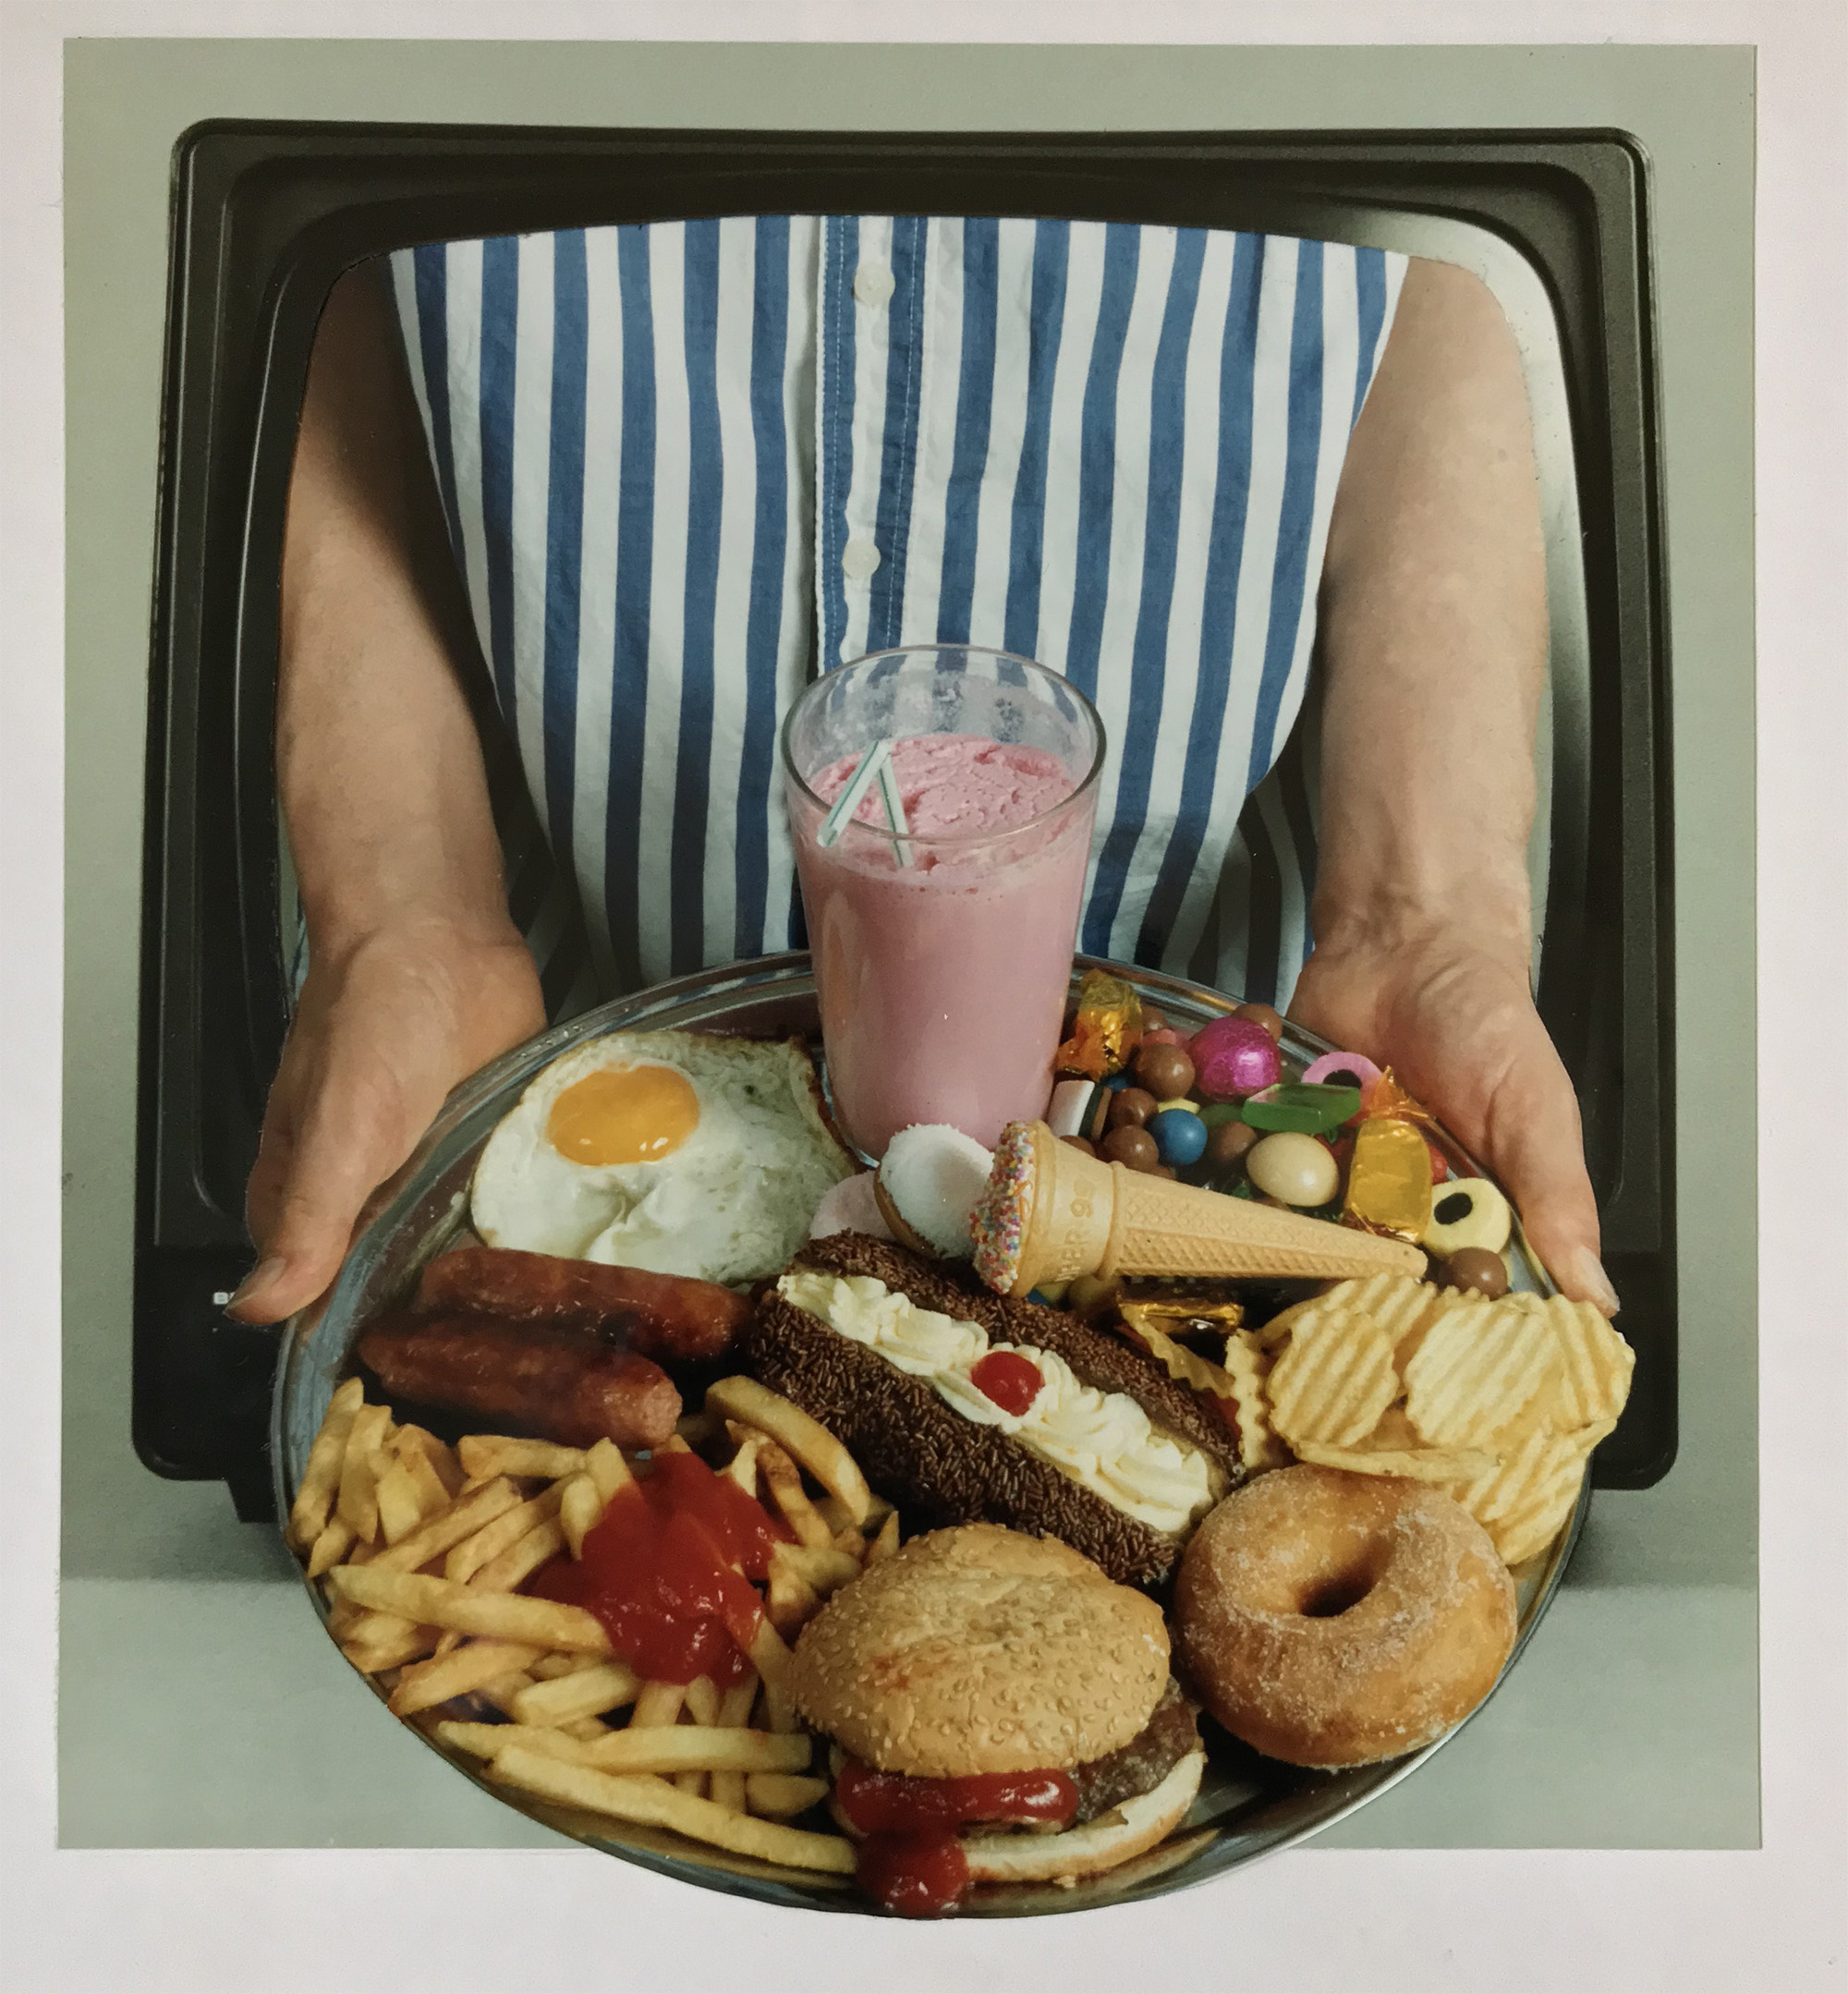 Junk Food - PhotomontageCibachrome print on card1991First published:New Scientist,11th May 1991Catalogue: PK/198